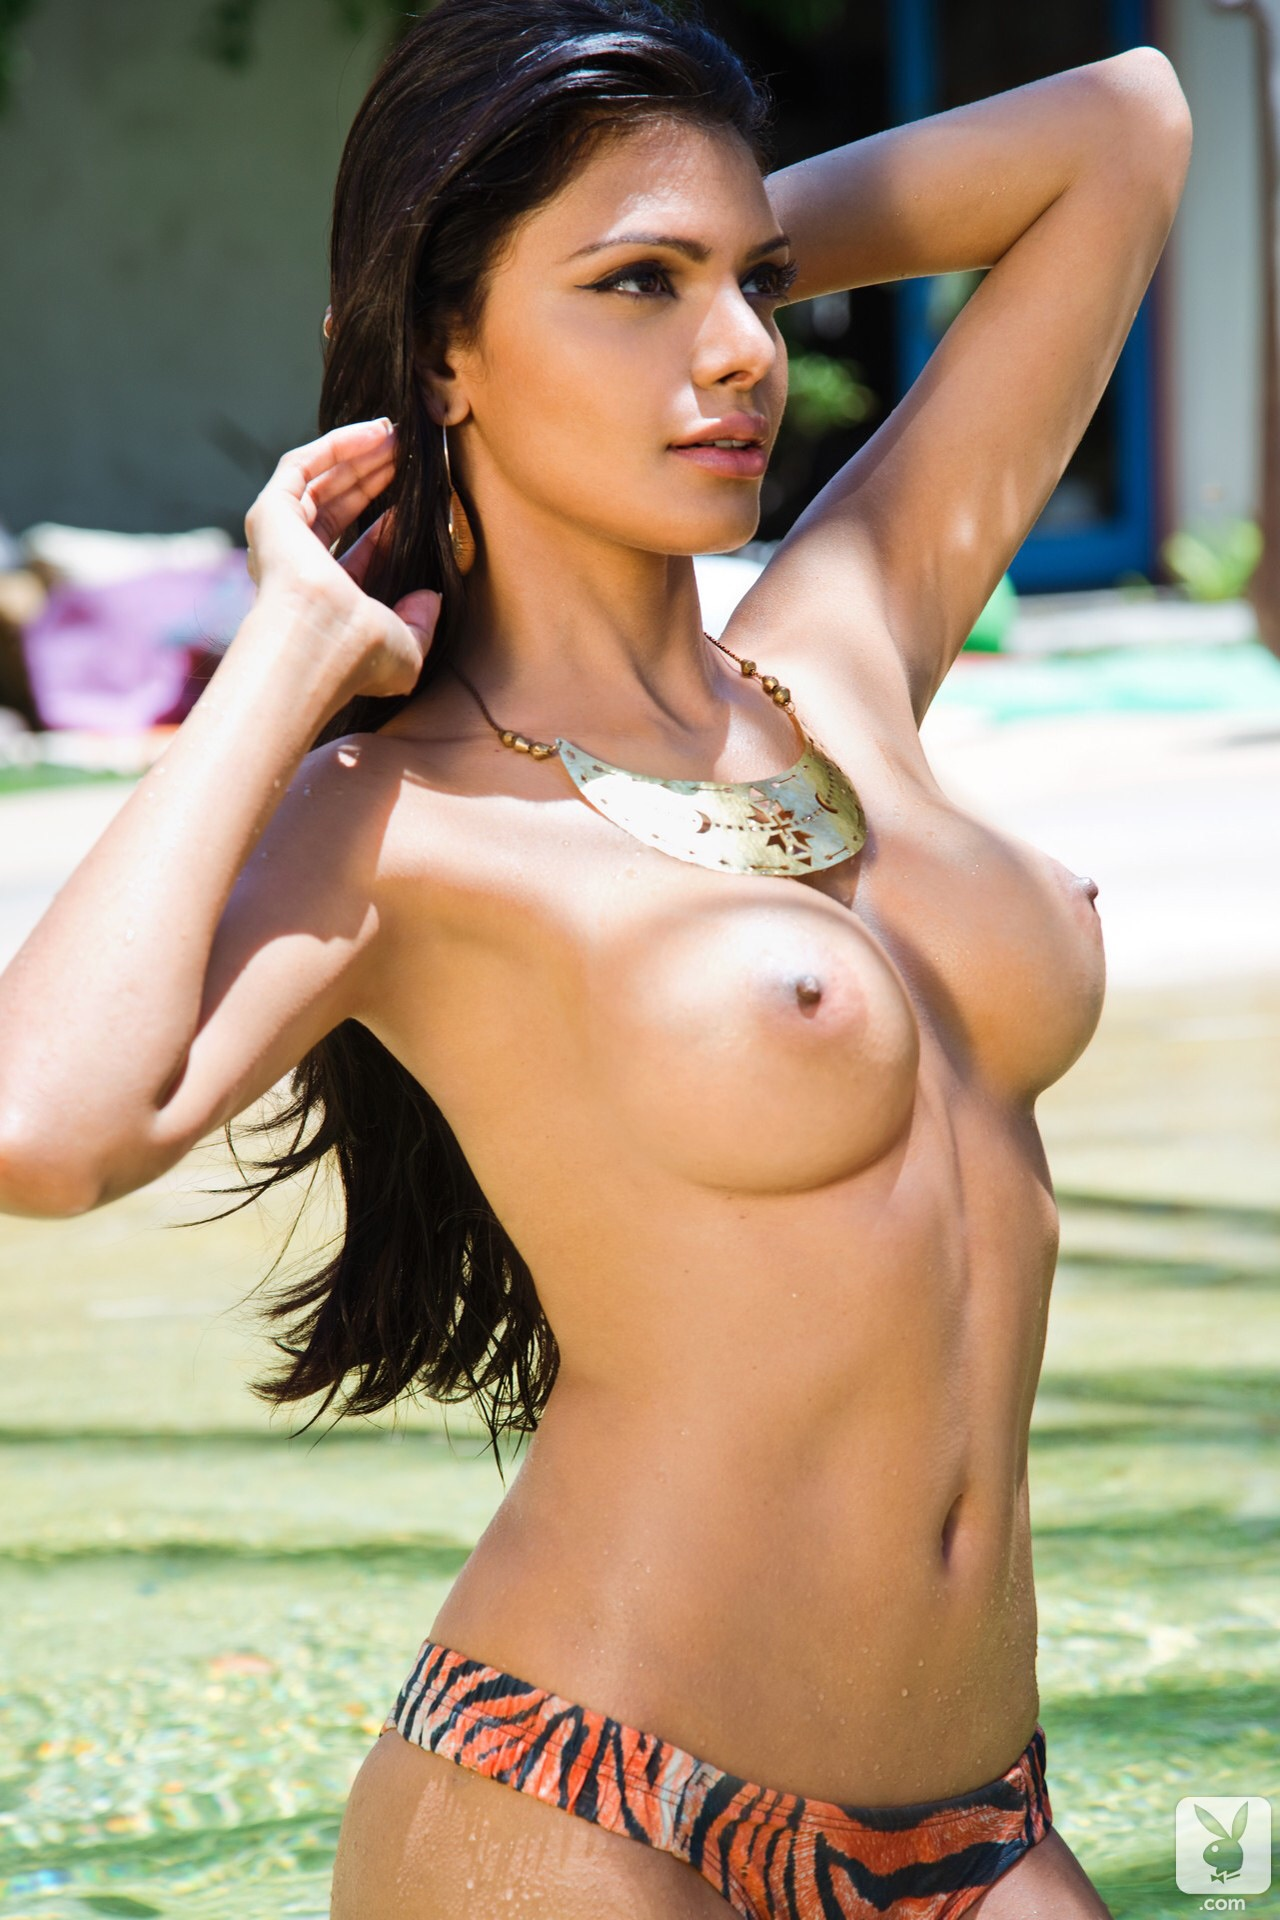 Fhm magazine nude photos-2780